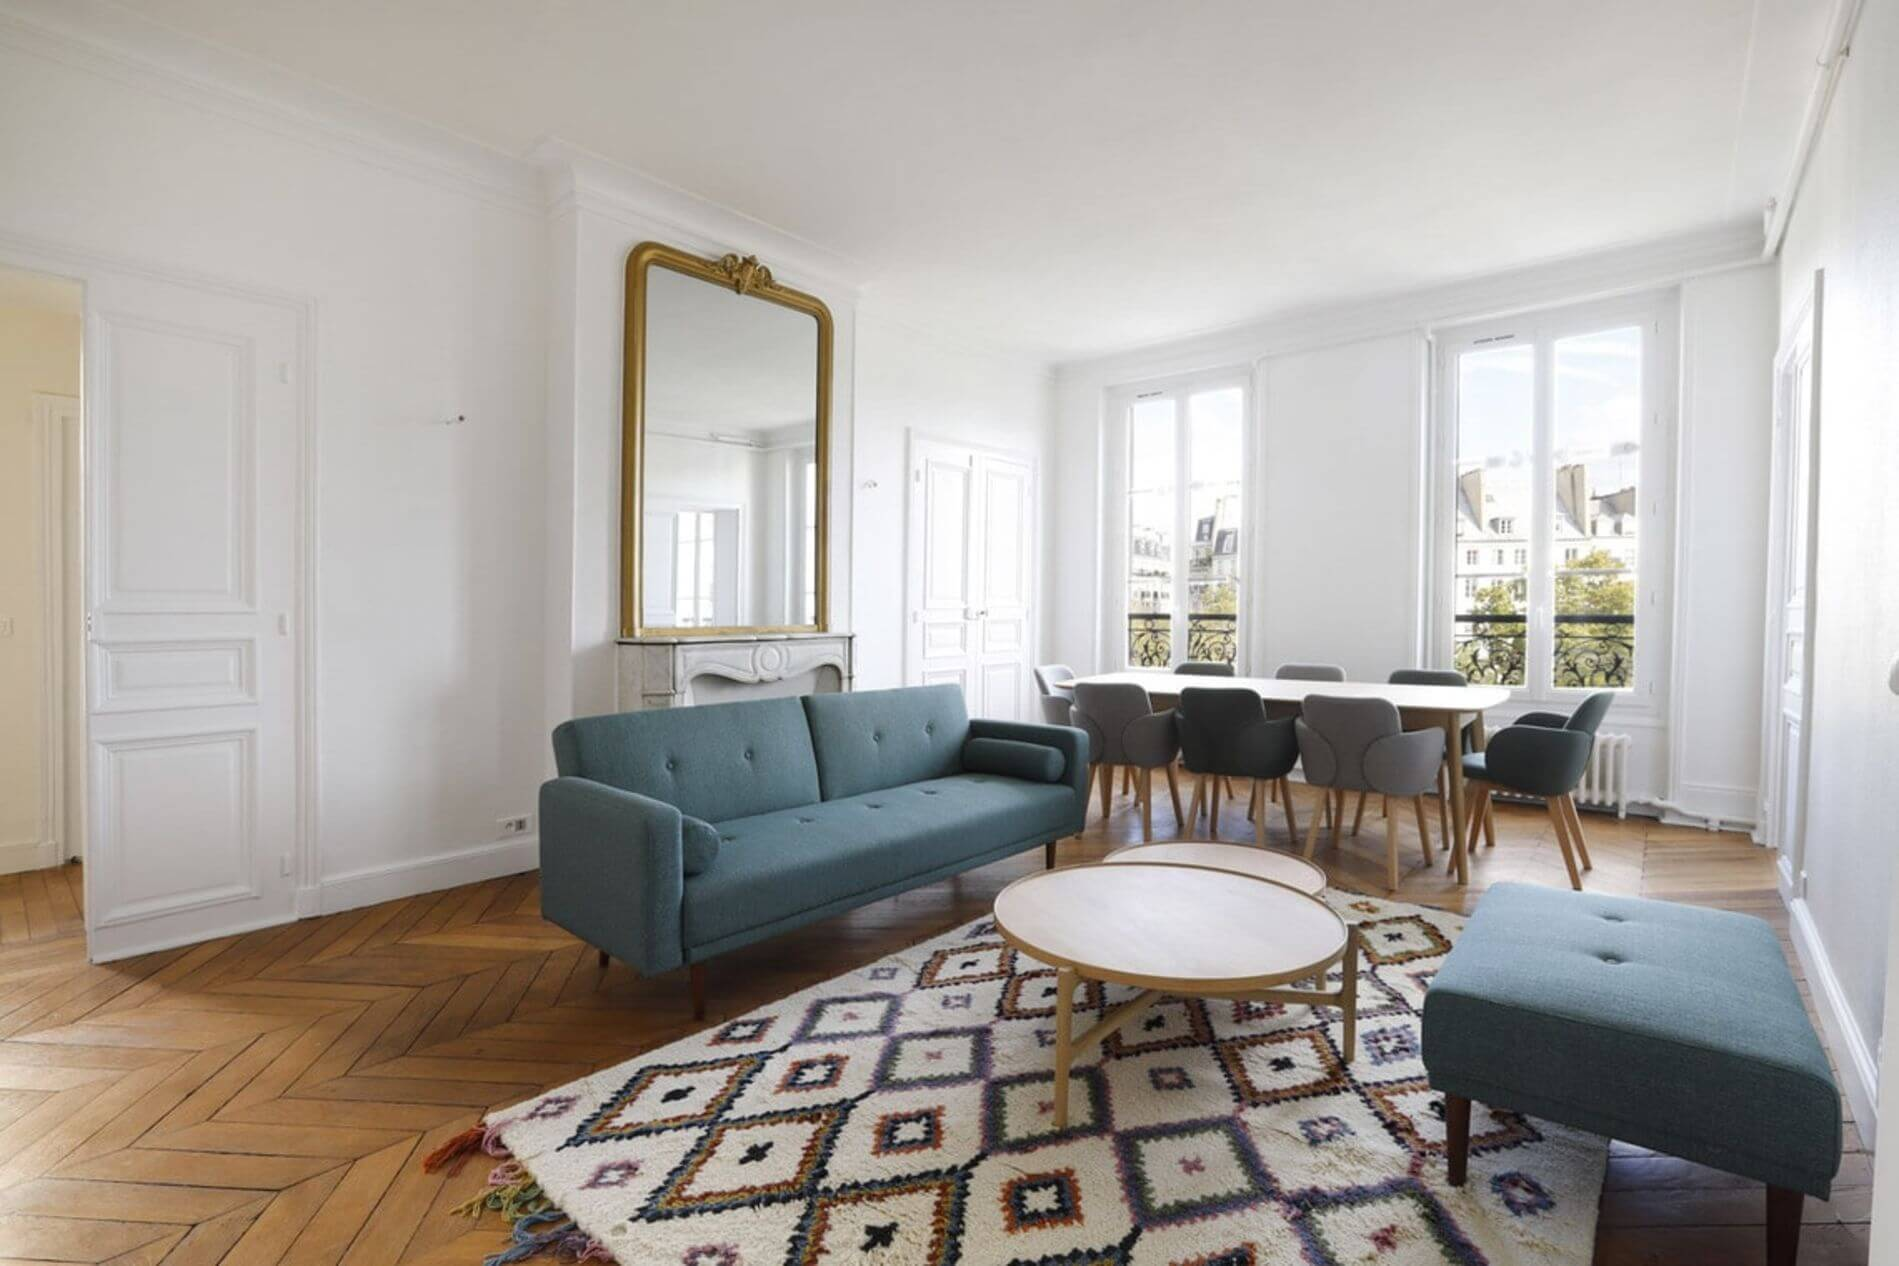 Gorgeous serviced apartment for rent in Bastille, Paris with a balcony